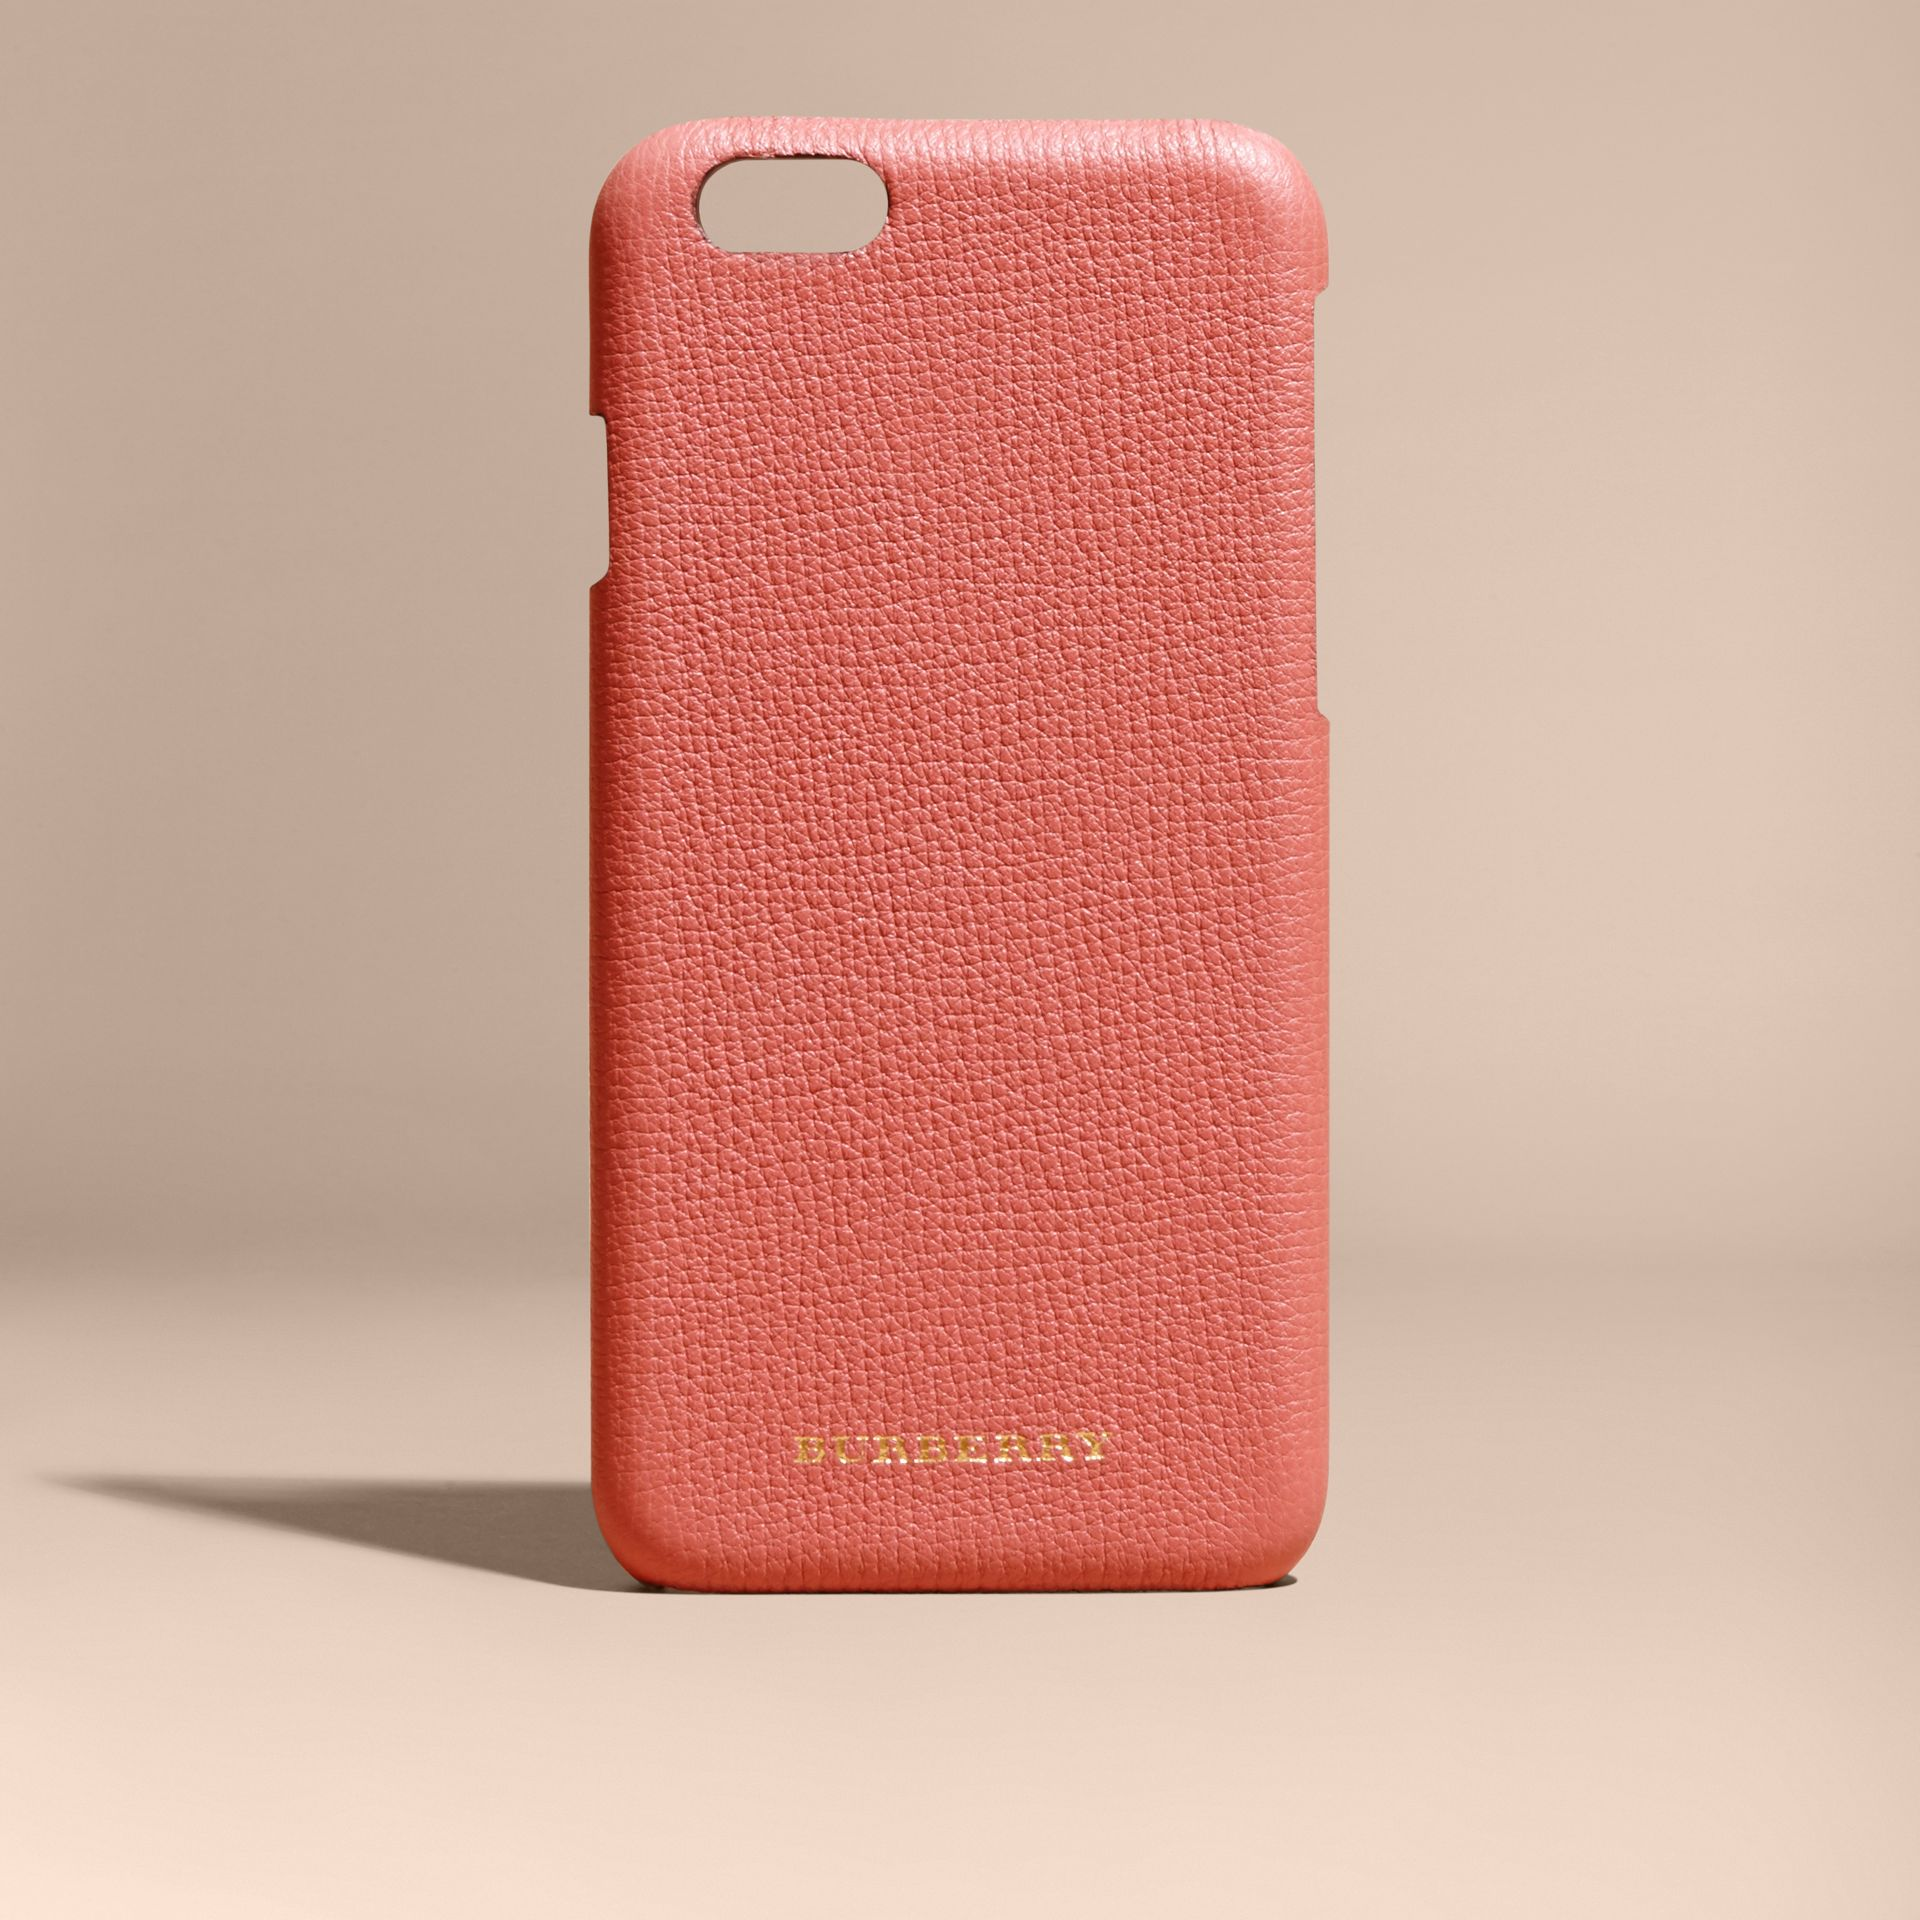 Grainy Leather iPhone 6 Case in Copper Pink - Women | Burberry Australia - gallery image 5